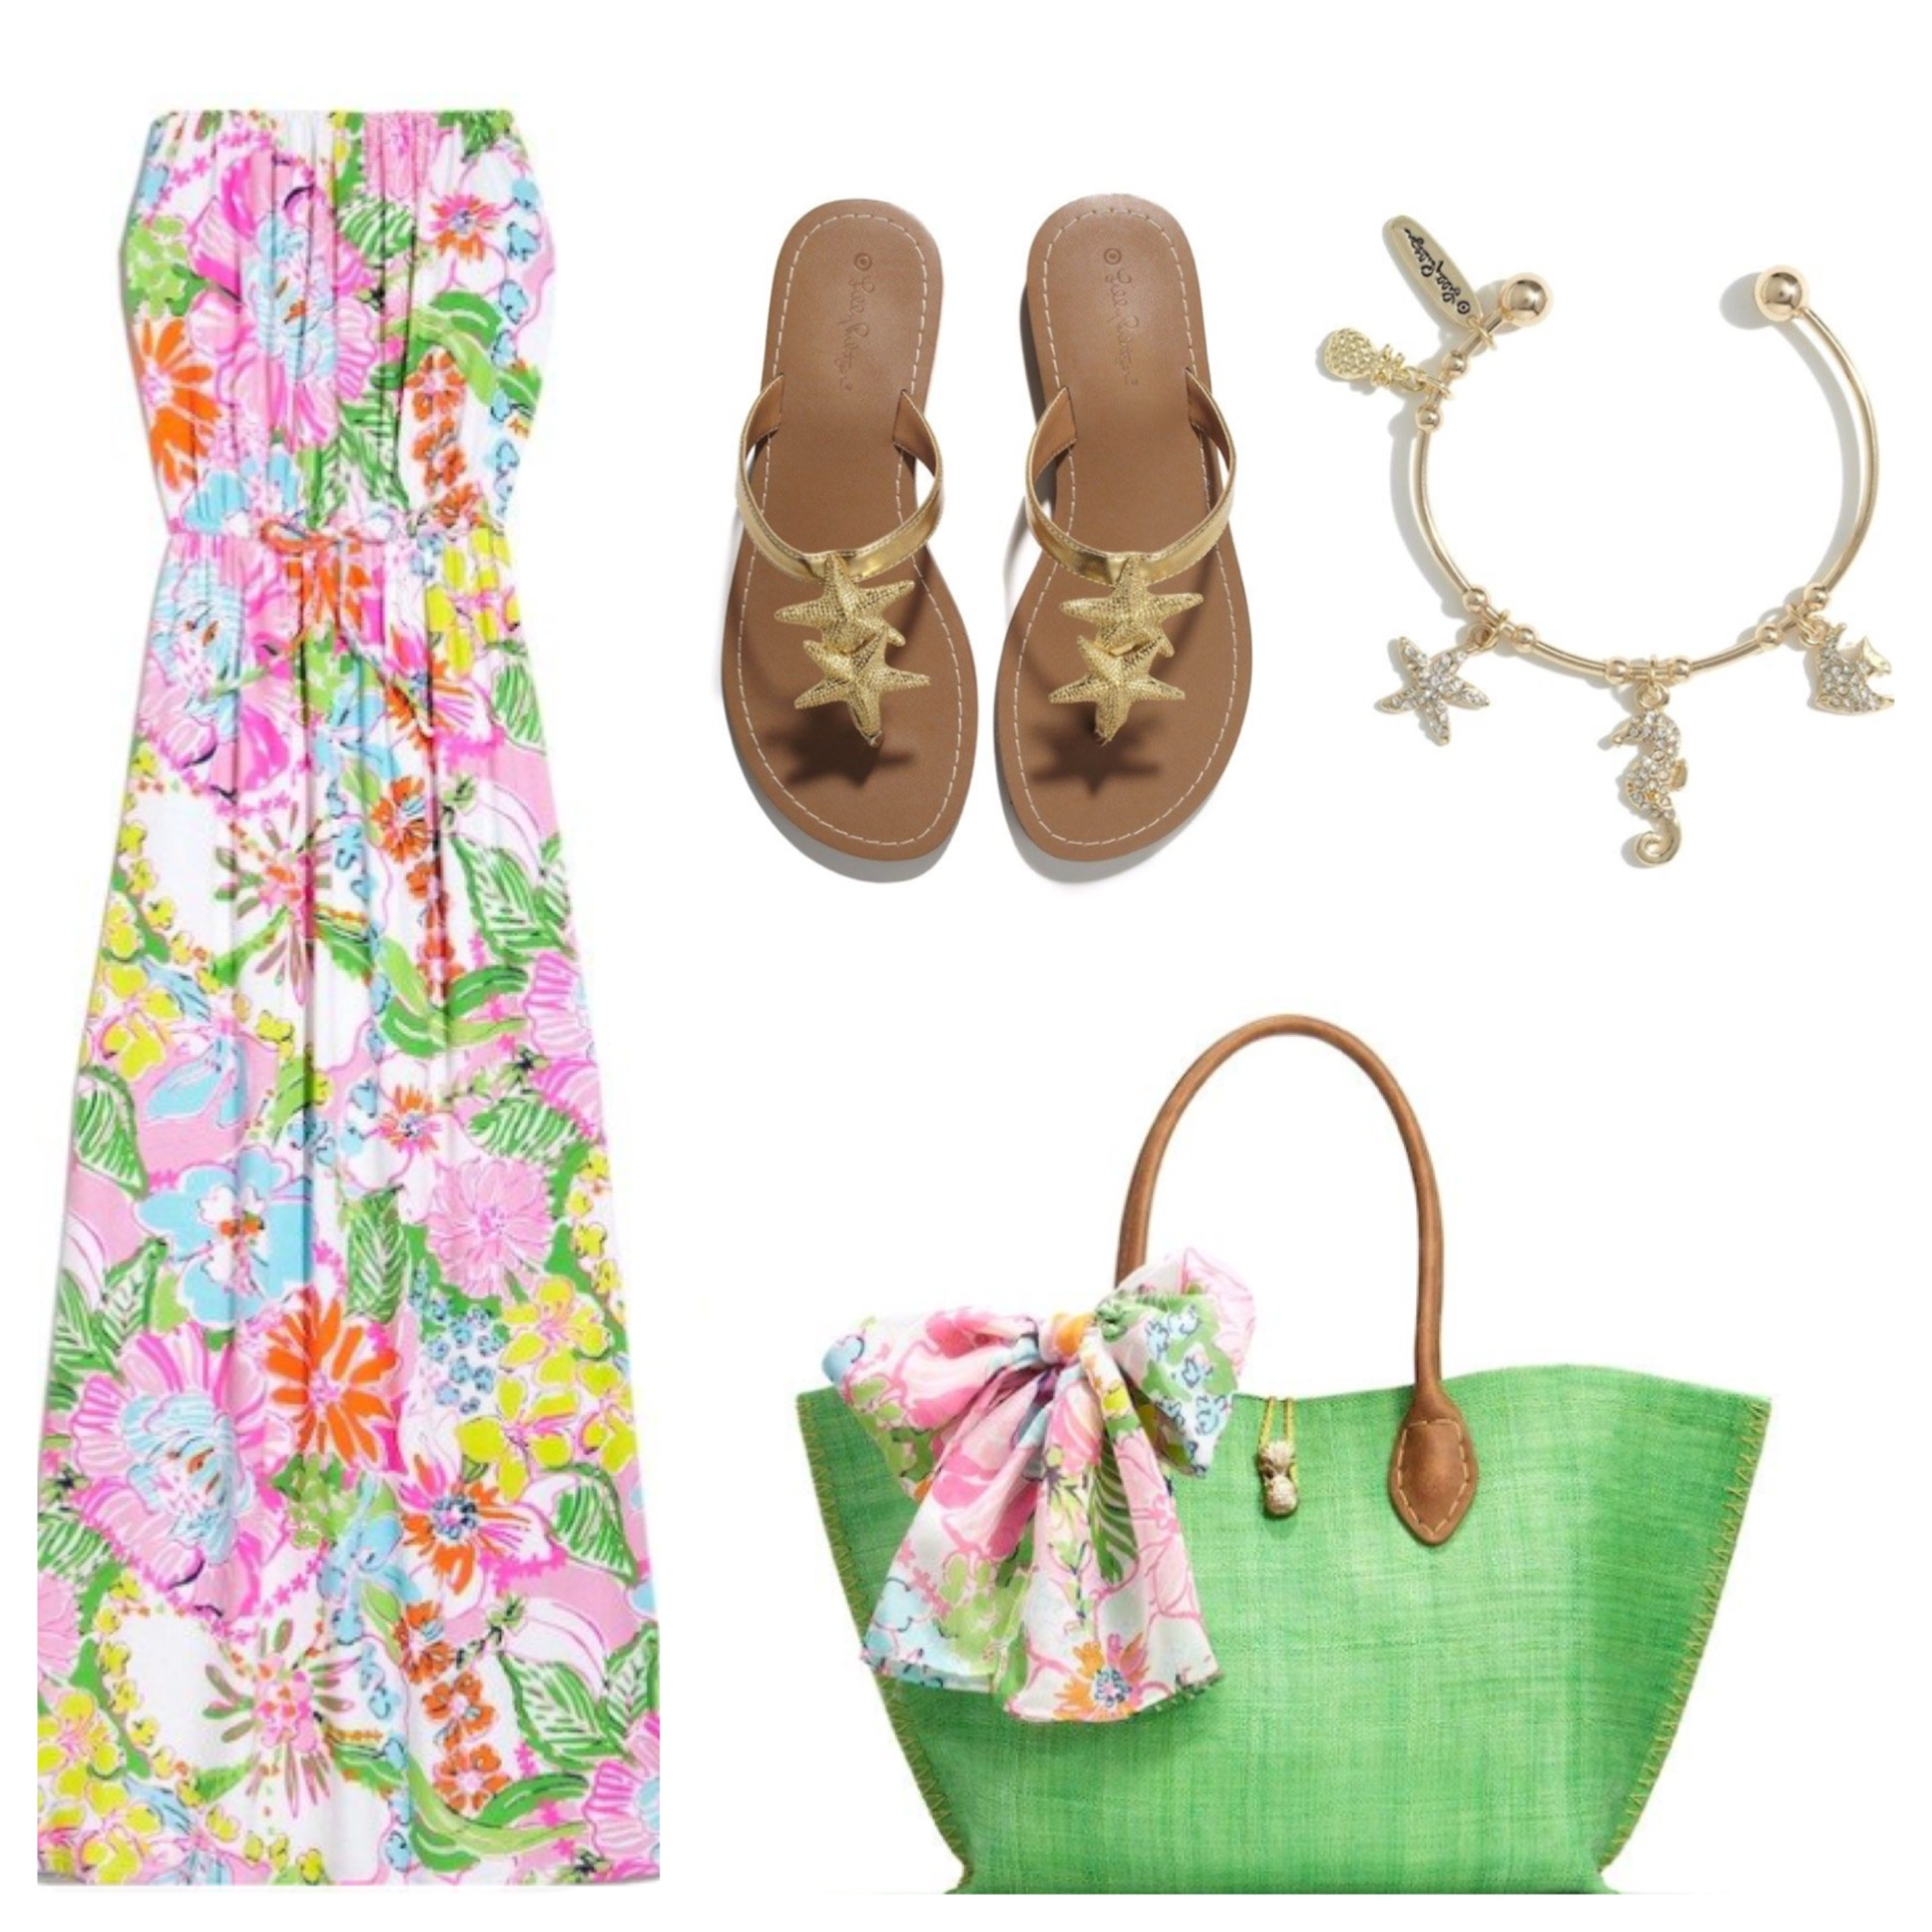 abd47a8245020 250 Must-Haves - The Lilly Pulitzer Collection for Target - Ask ...